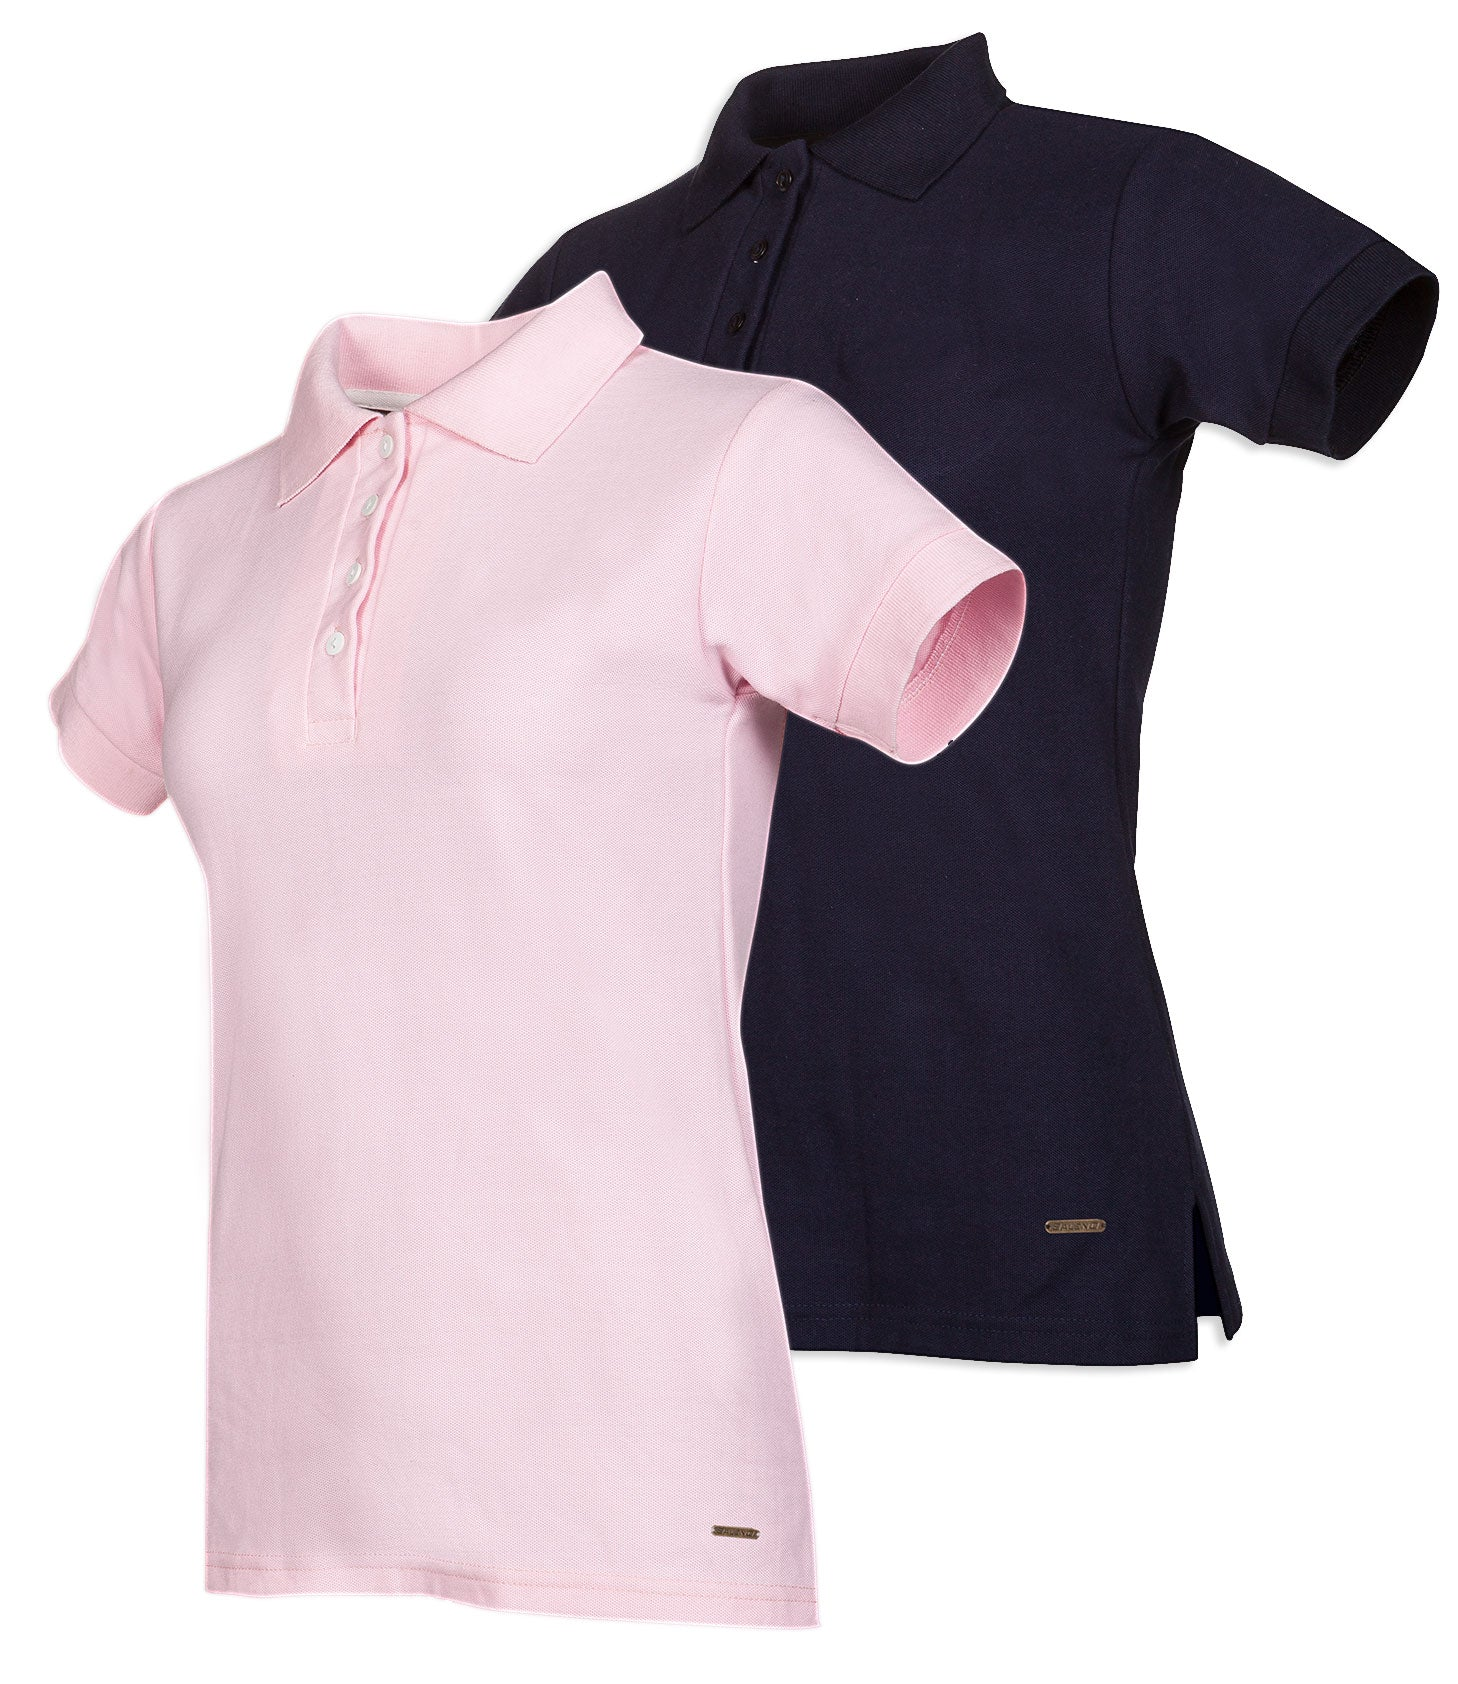 Baleno Steffi Ladies Polo Shirt in Pink and Navy